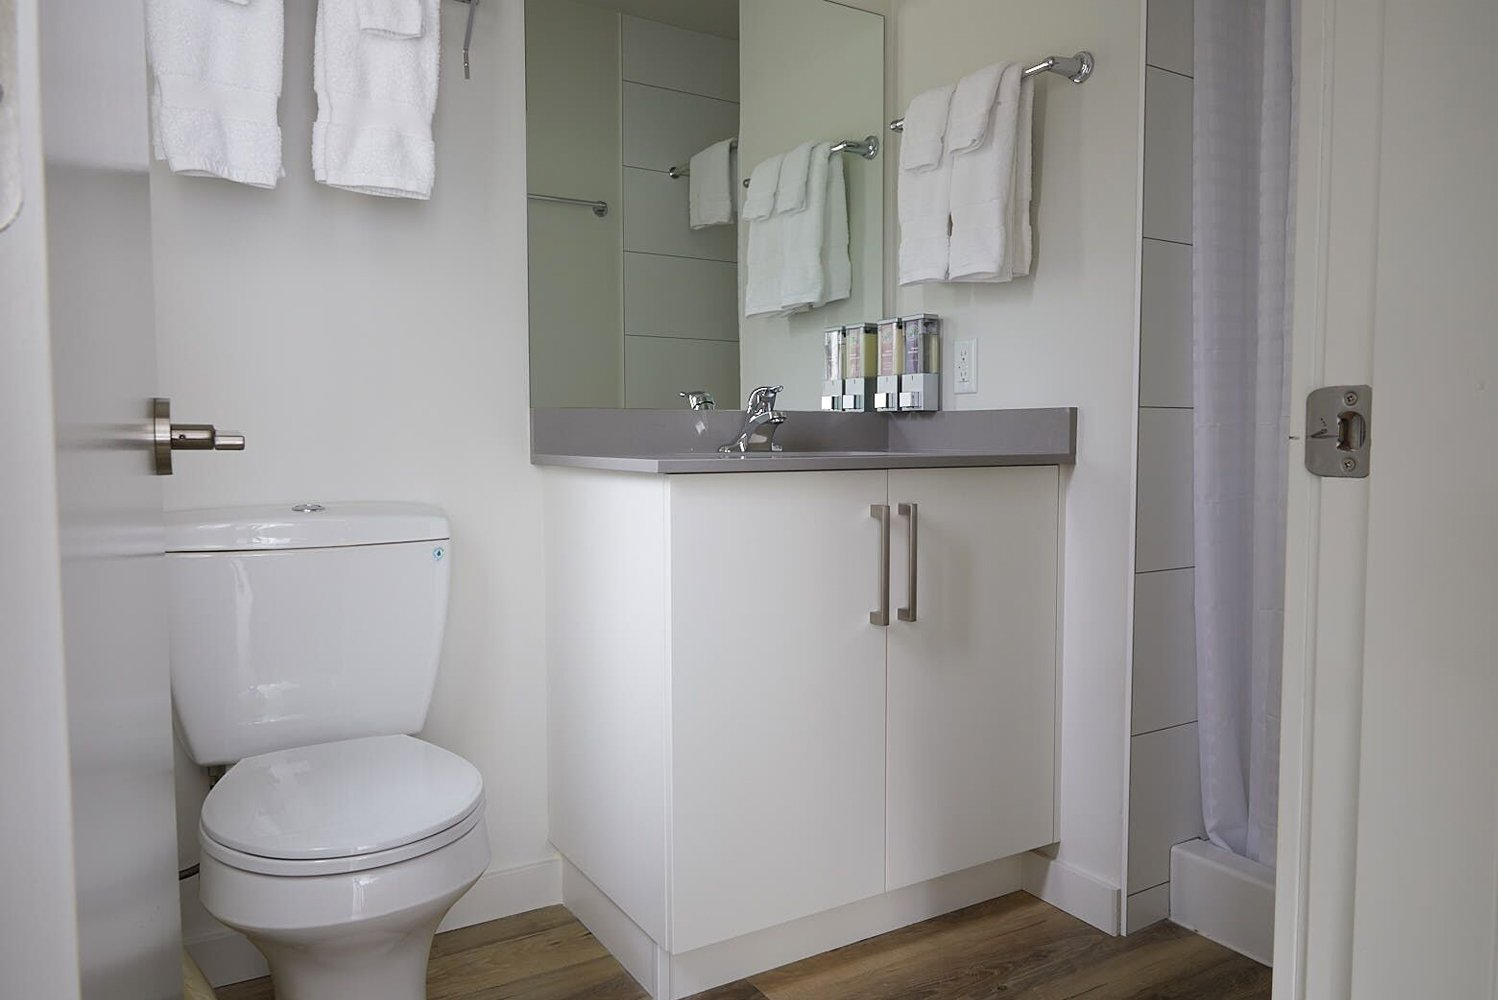 The bathrooms were also improved with the addition of new cabinets, faucets, tubs and tub surrounds.